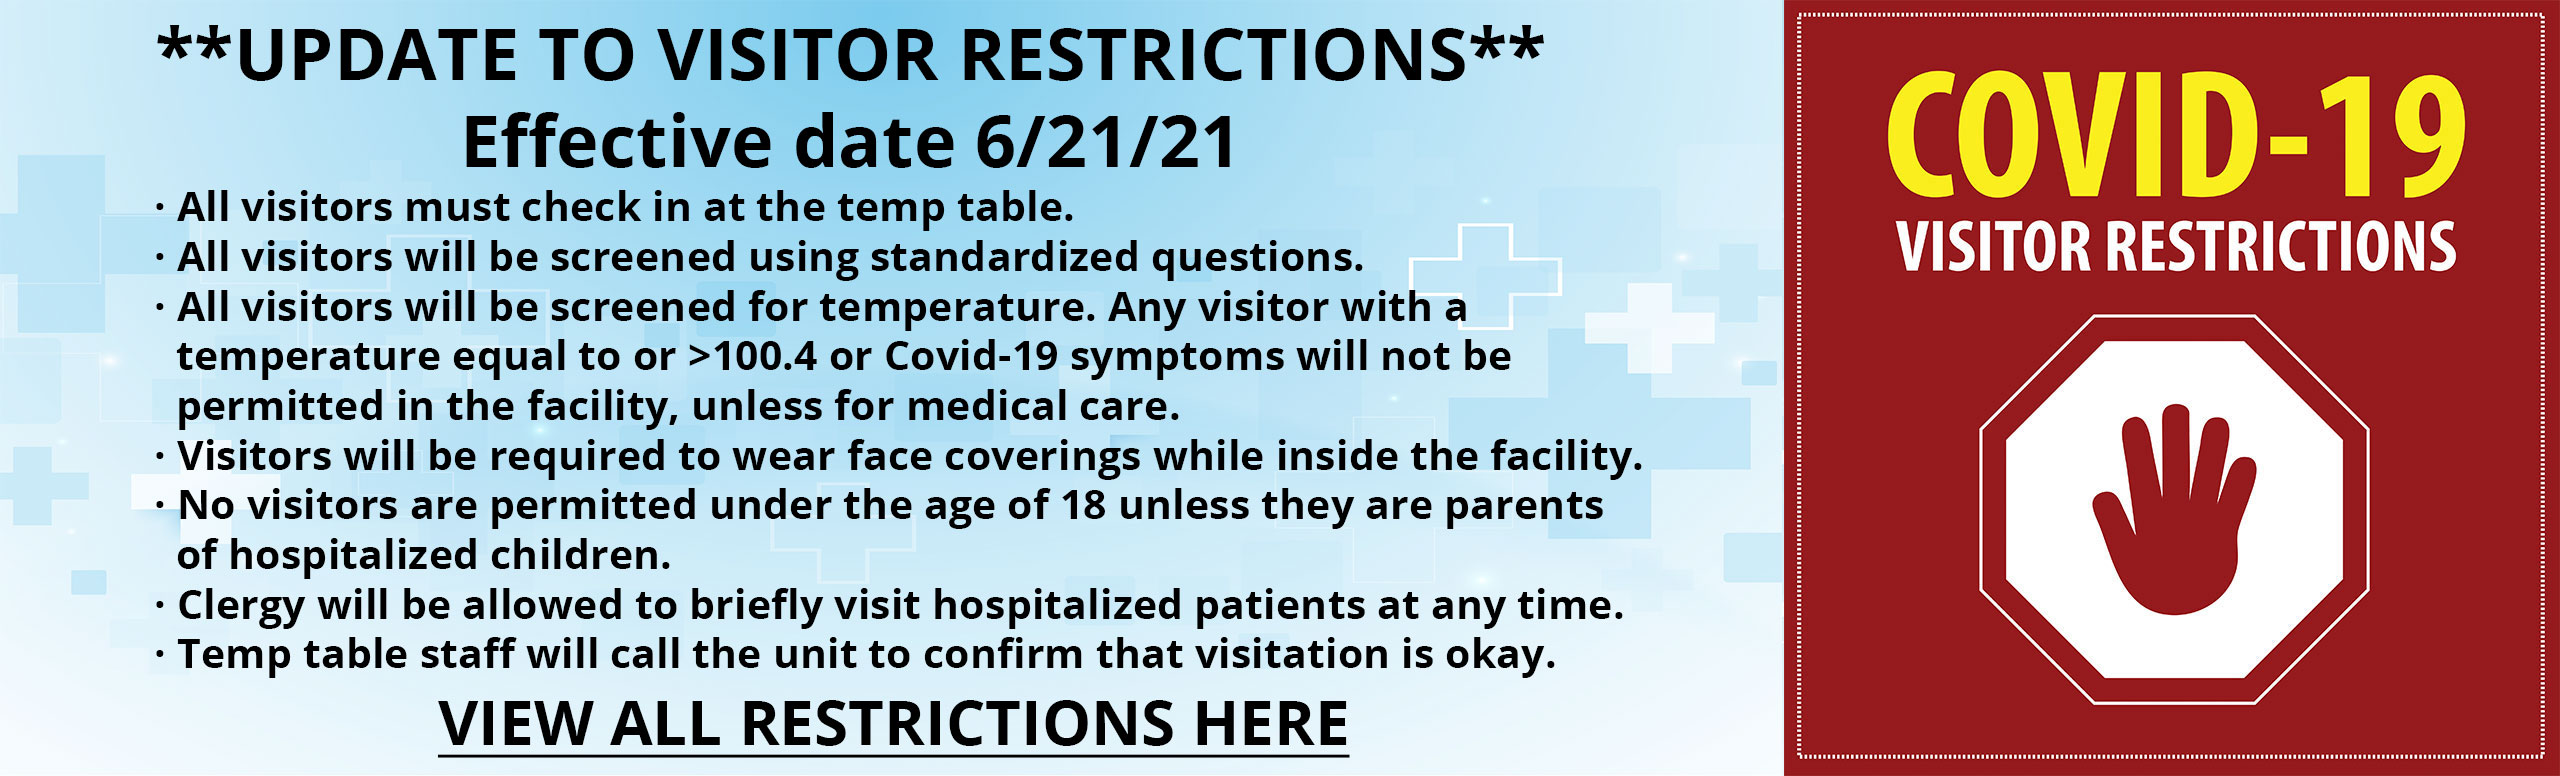 **UPDATE TO VISITOR RESTRICTIONS**  Effective date 6/21/21  · All visitors must check in at the temp table. · All visitors will be screened using standardized questions. · All visitors will be screened for temperature. Any visitor with a    temperature equal to or >100.4 or Covid-19 symptoms will not be    permitted in the facility, unless for medical care. · Visitors will be required to wear face coverings while inside the facility. · No visitors are permitted under the age of 18 unless they are parents    of hospitalized children. · Clergy will be allowed to briefly visit hospitalized patients at any time. · Temp table staff will call the unit to confirm that visitation is okay.